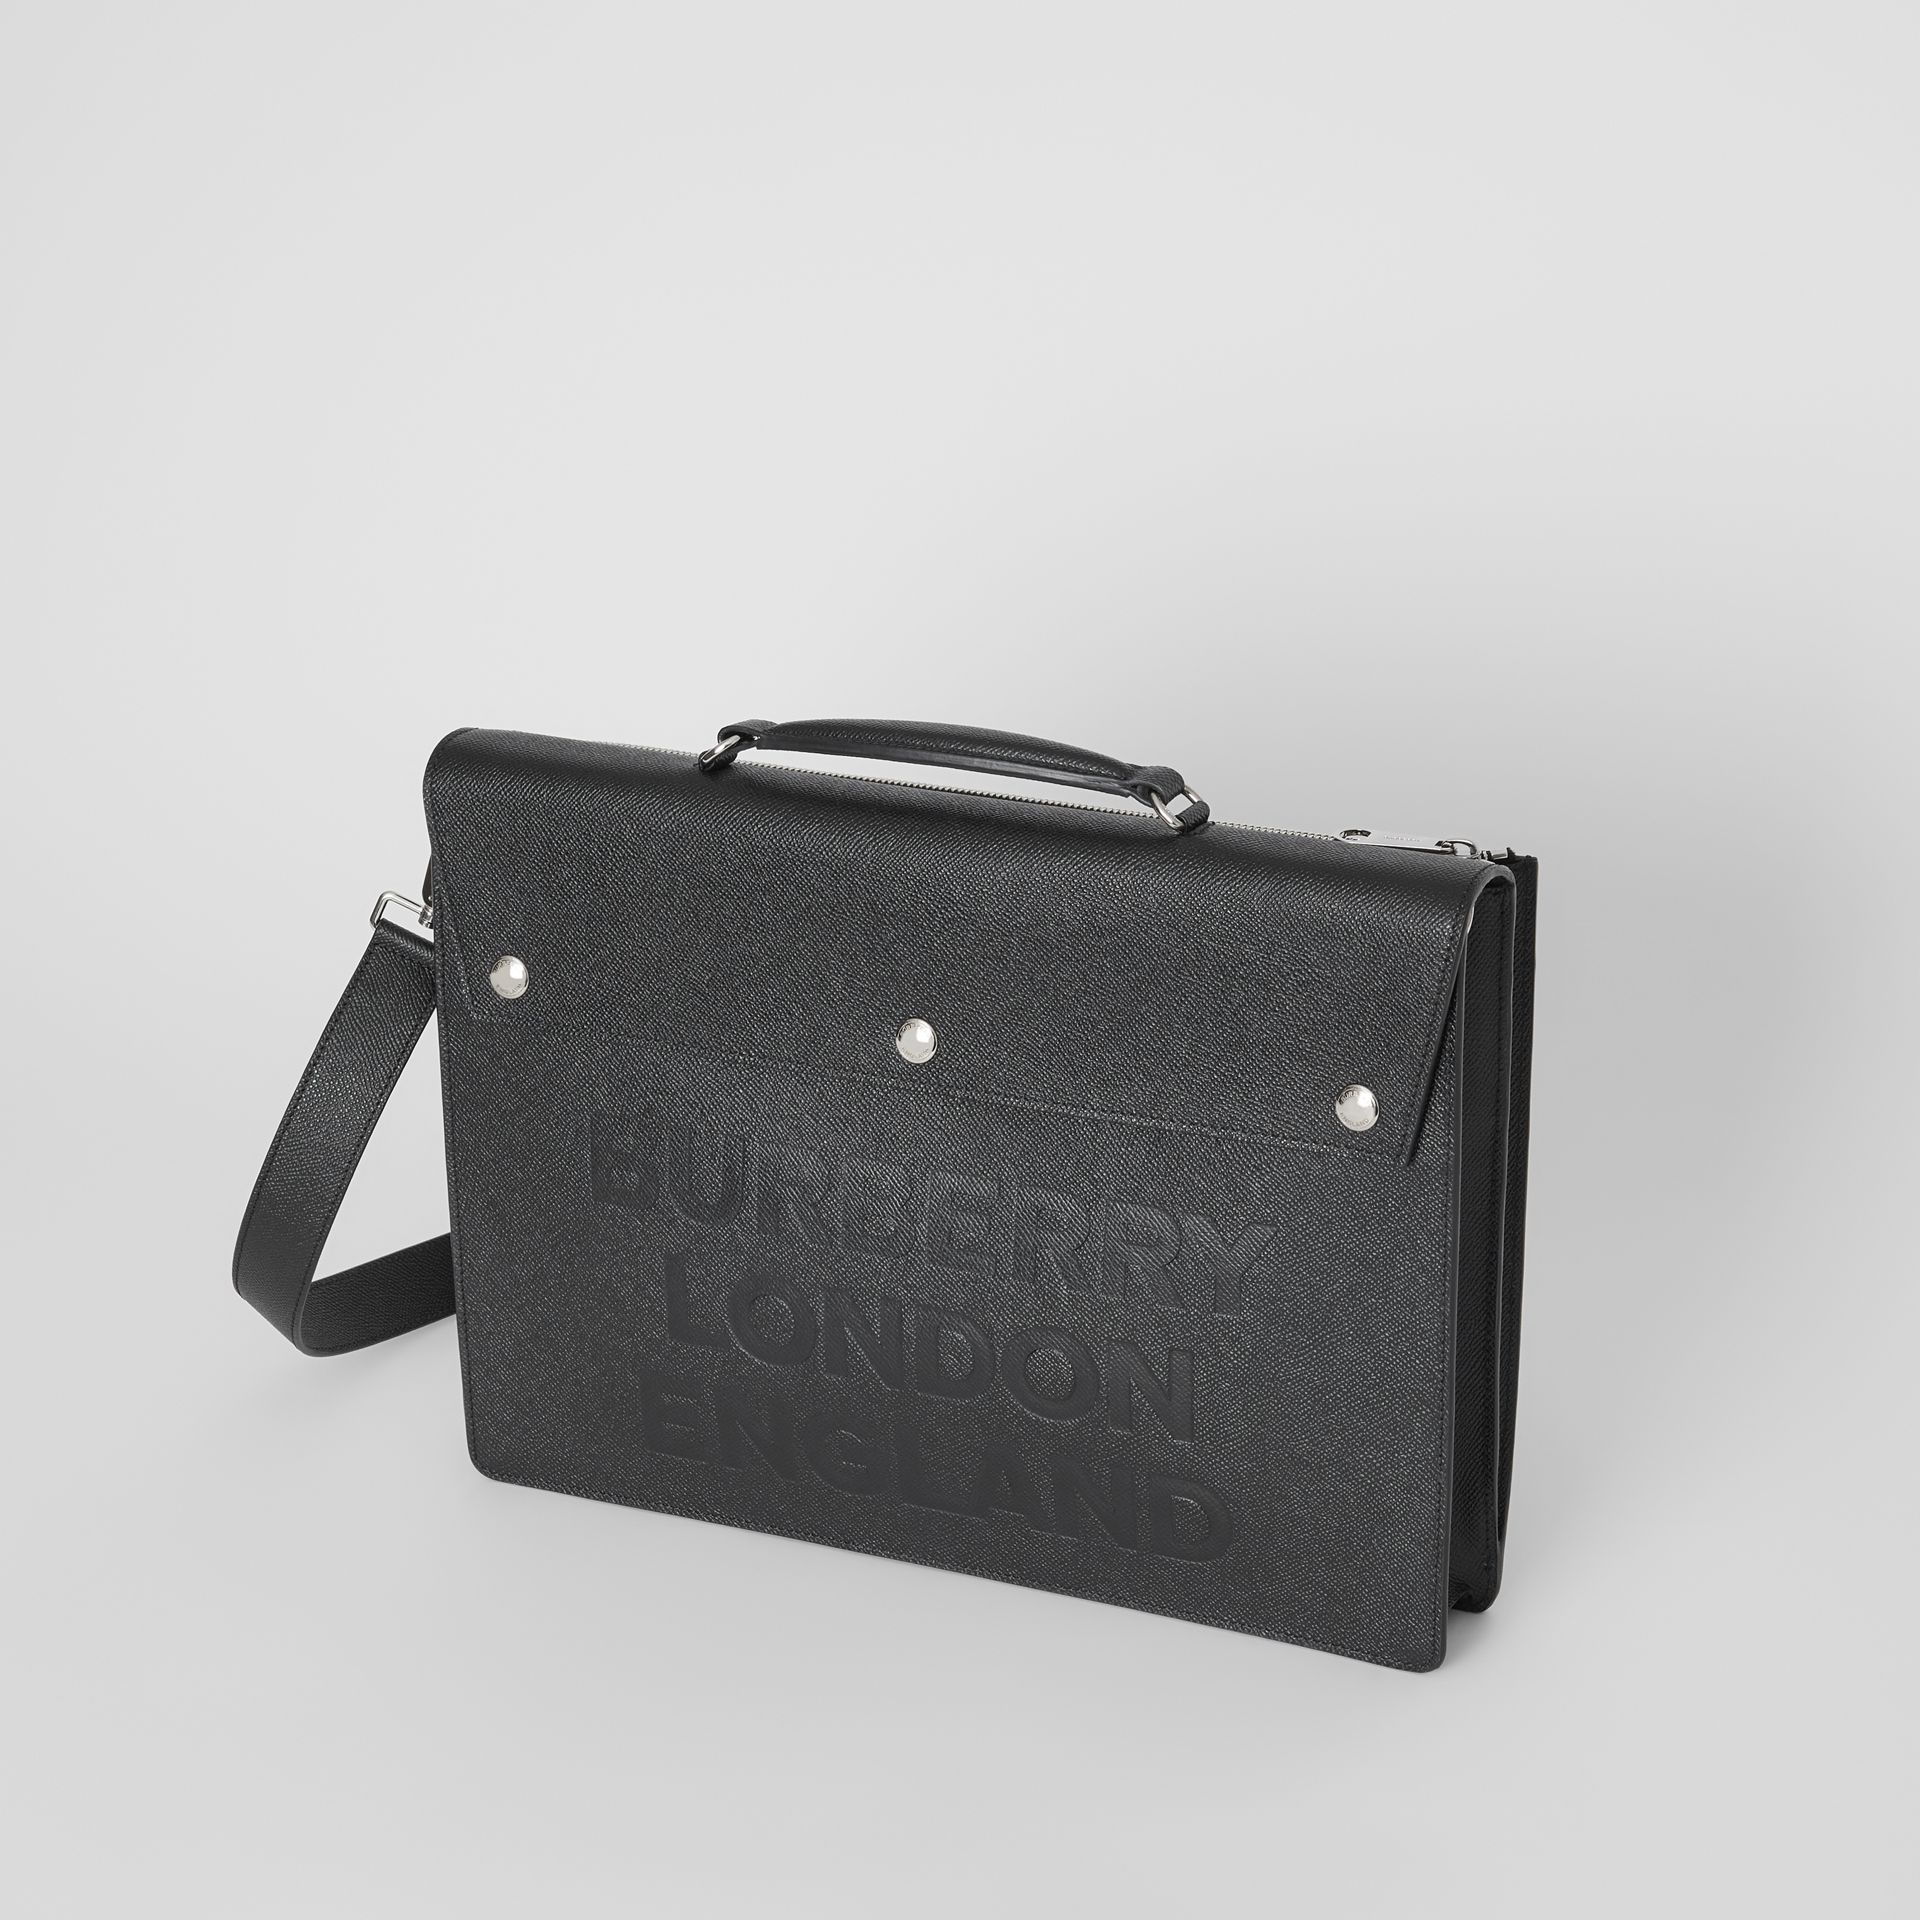 Porte-documents en cuir à triple pression avec logo (Noir) | Burberry - photo de la galerie 3